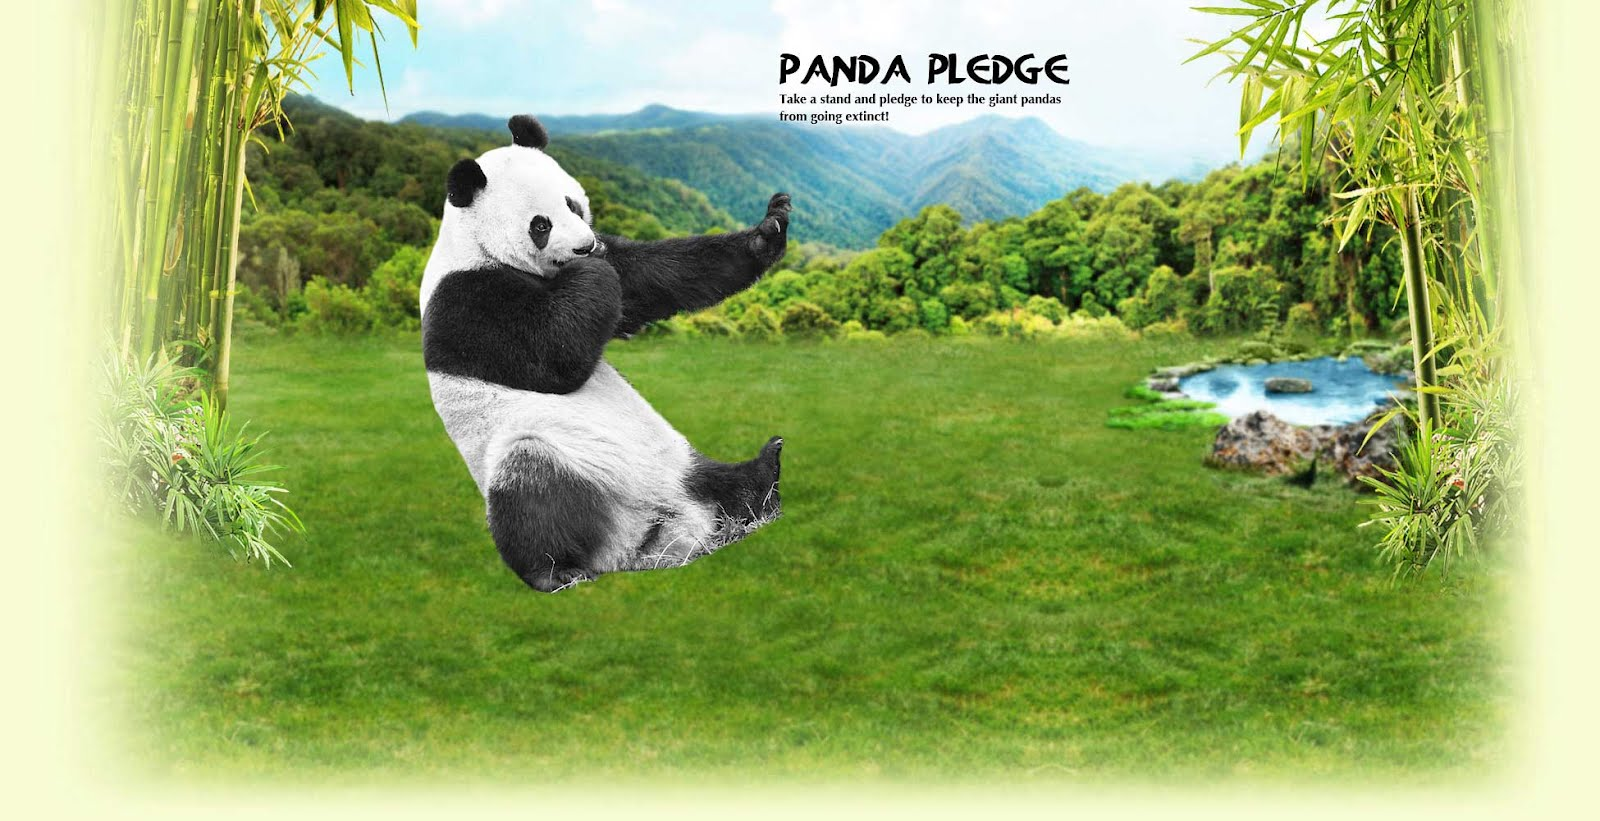 Panda PLEDGE - Take a stand and pledge to keep the giant pandas from going extinct!